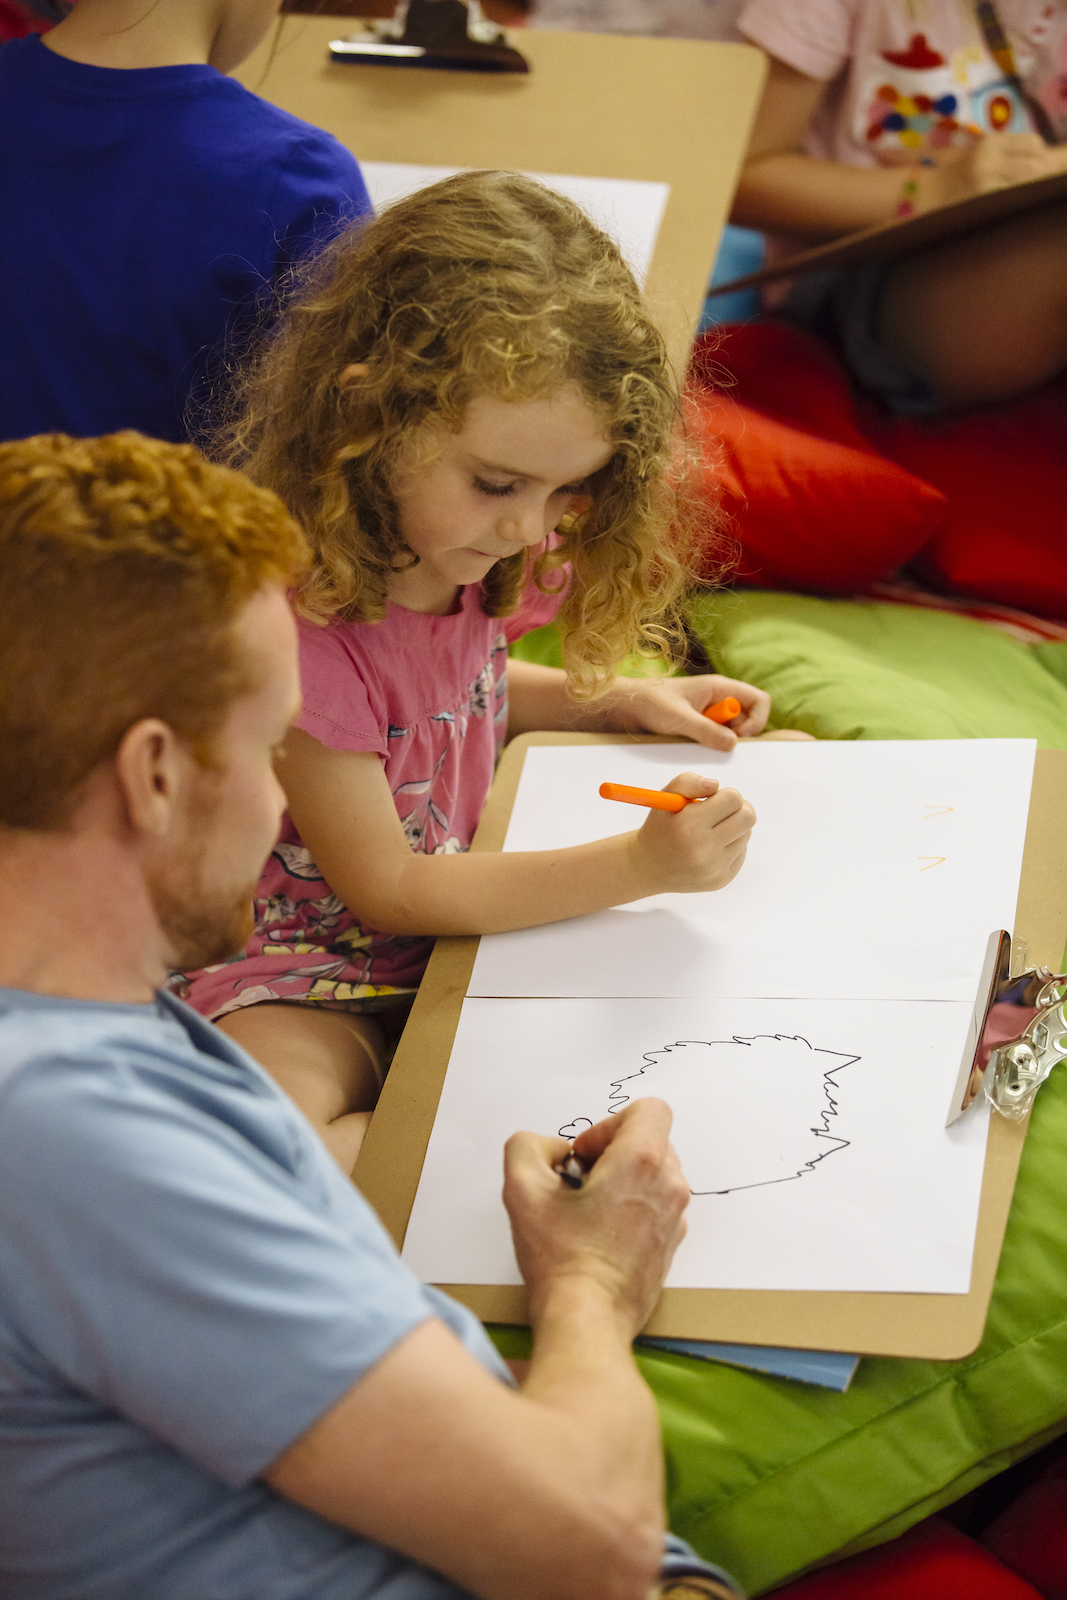 A man helps his daughter draw on a piece of paper